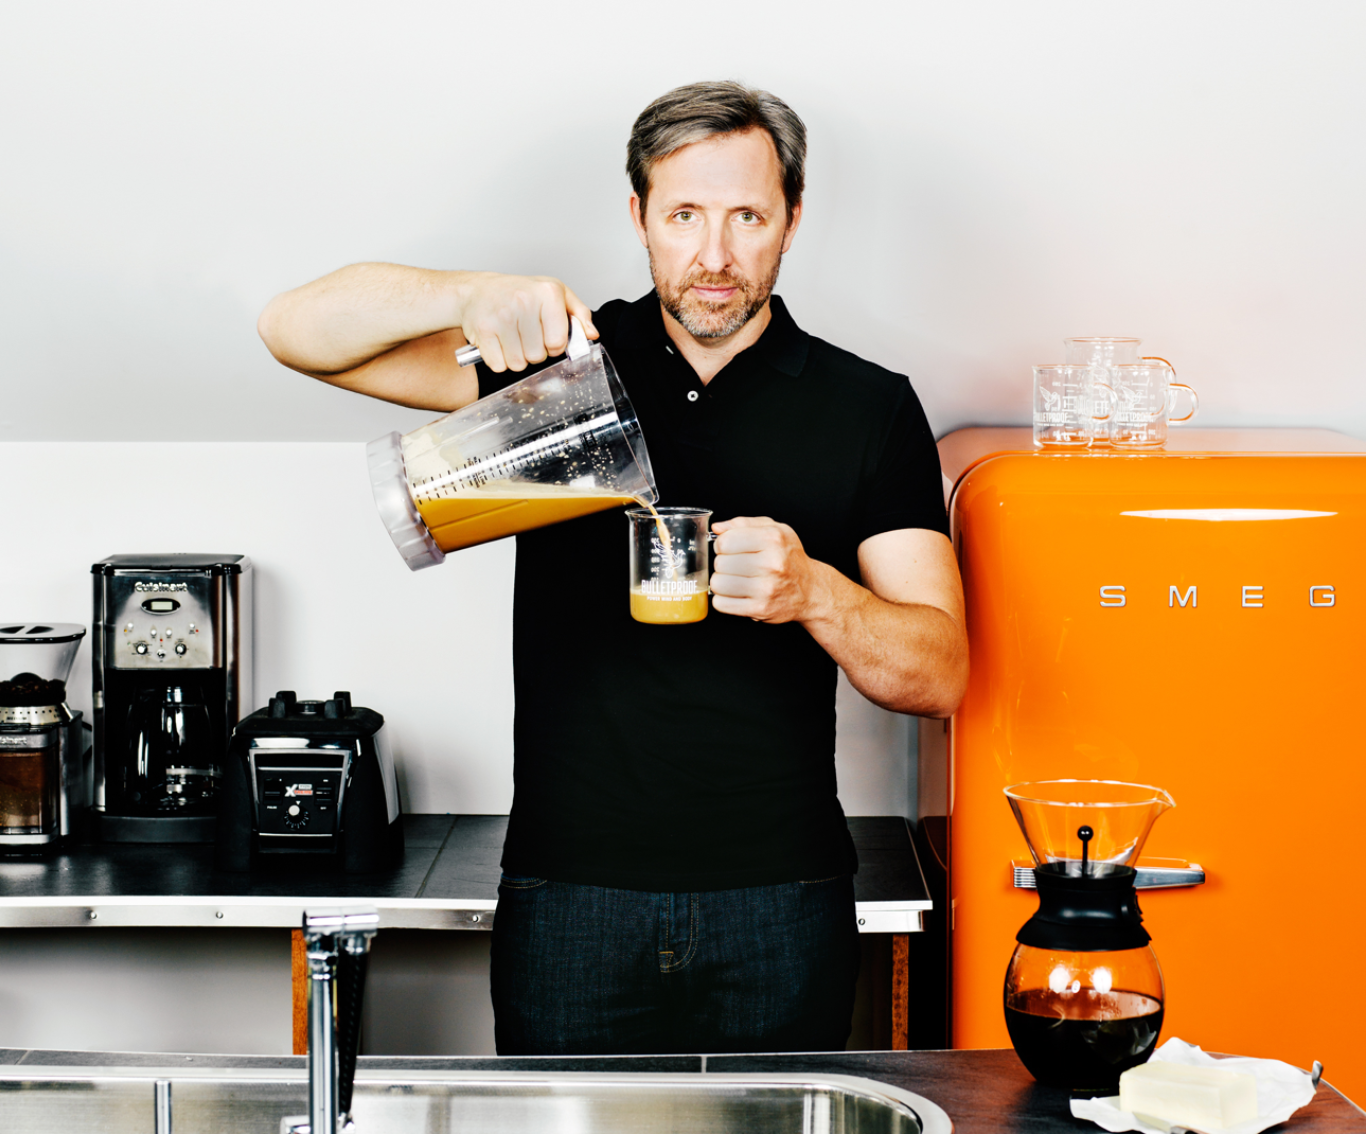 Dave Asprey Pouring Coffee